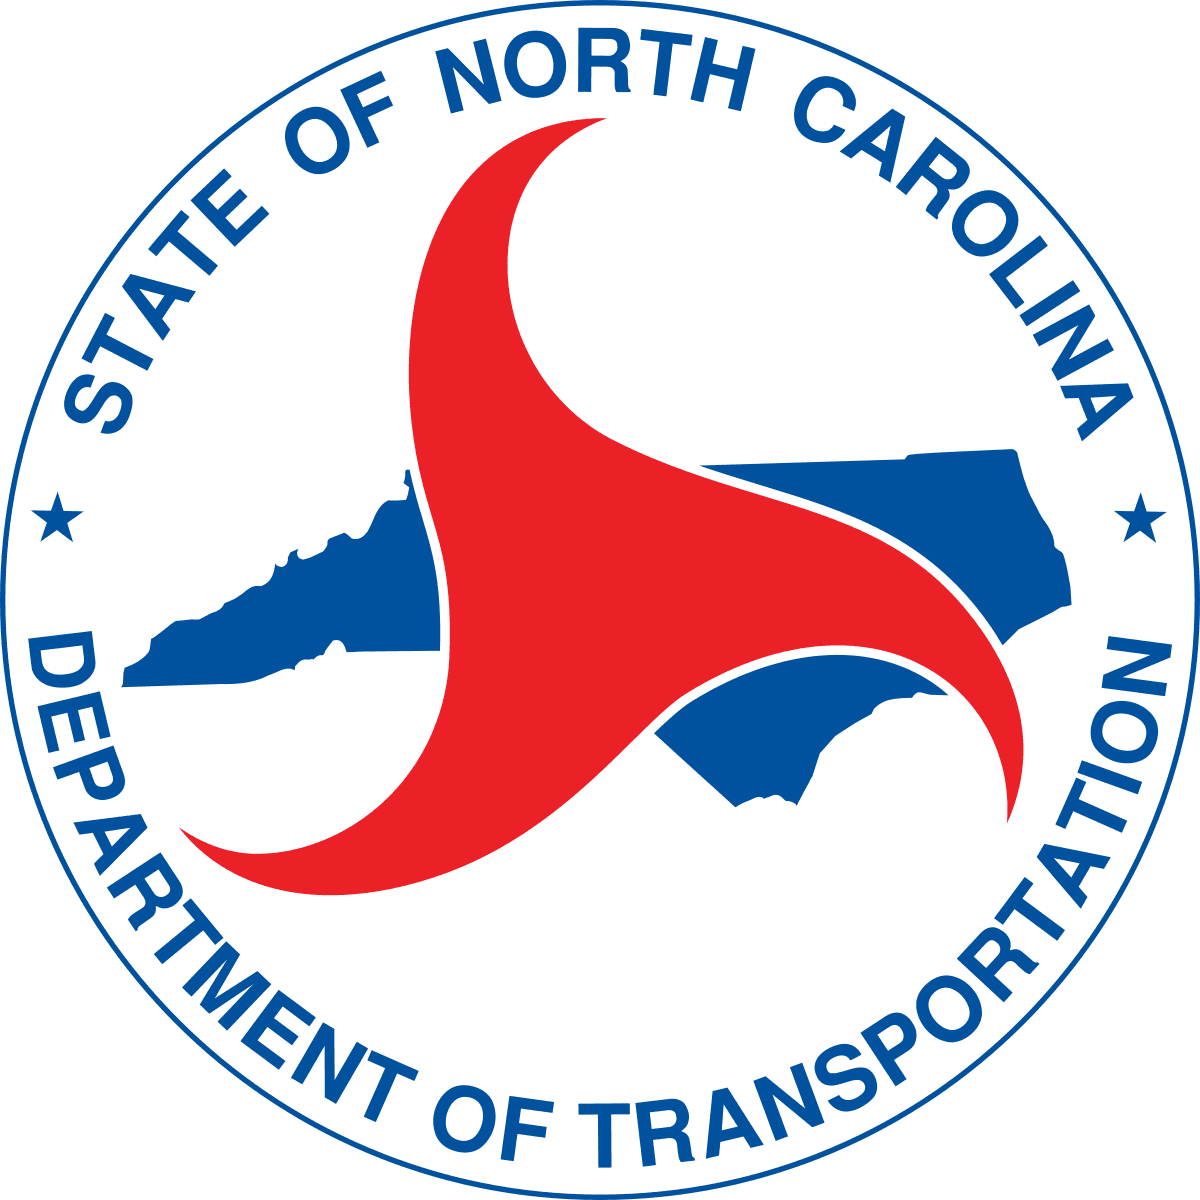 Seal_of_the_North_Carolina_Department_of_Transportation